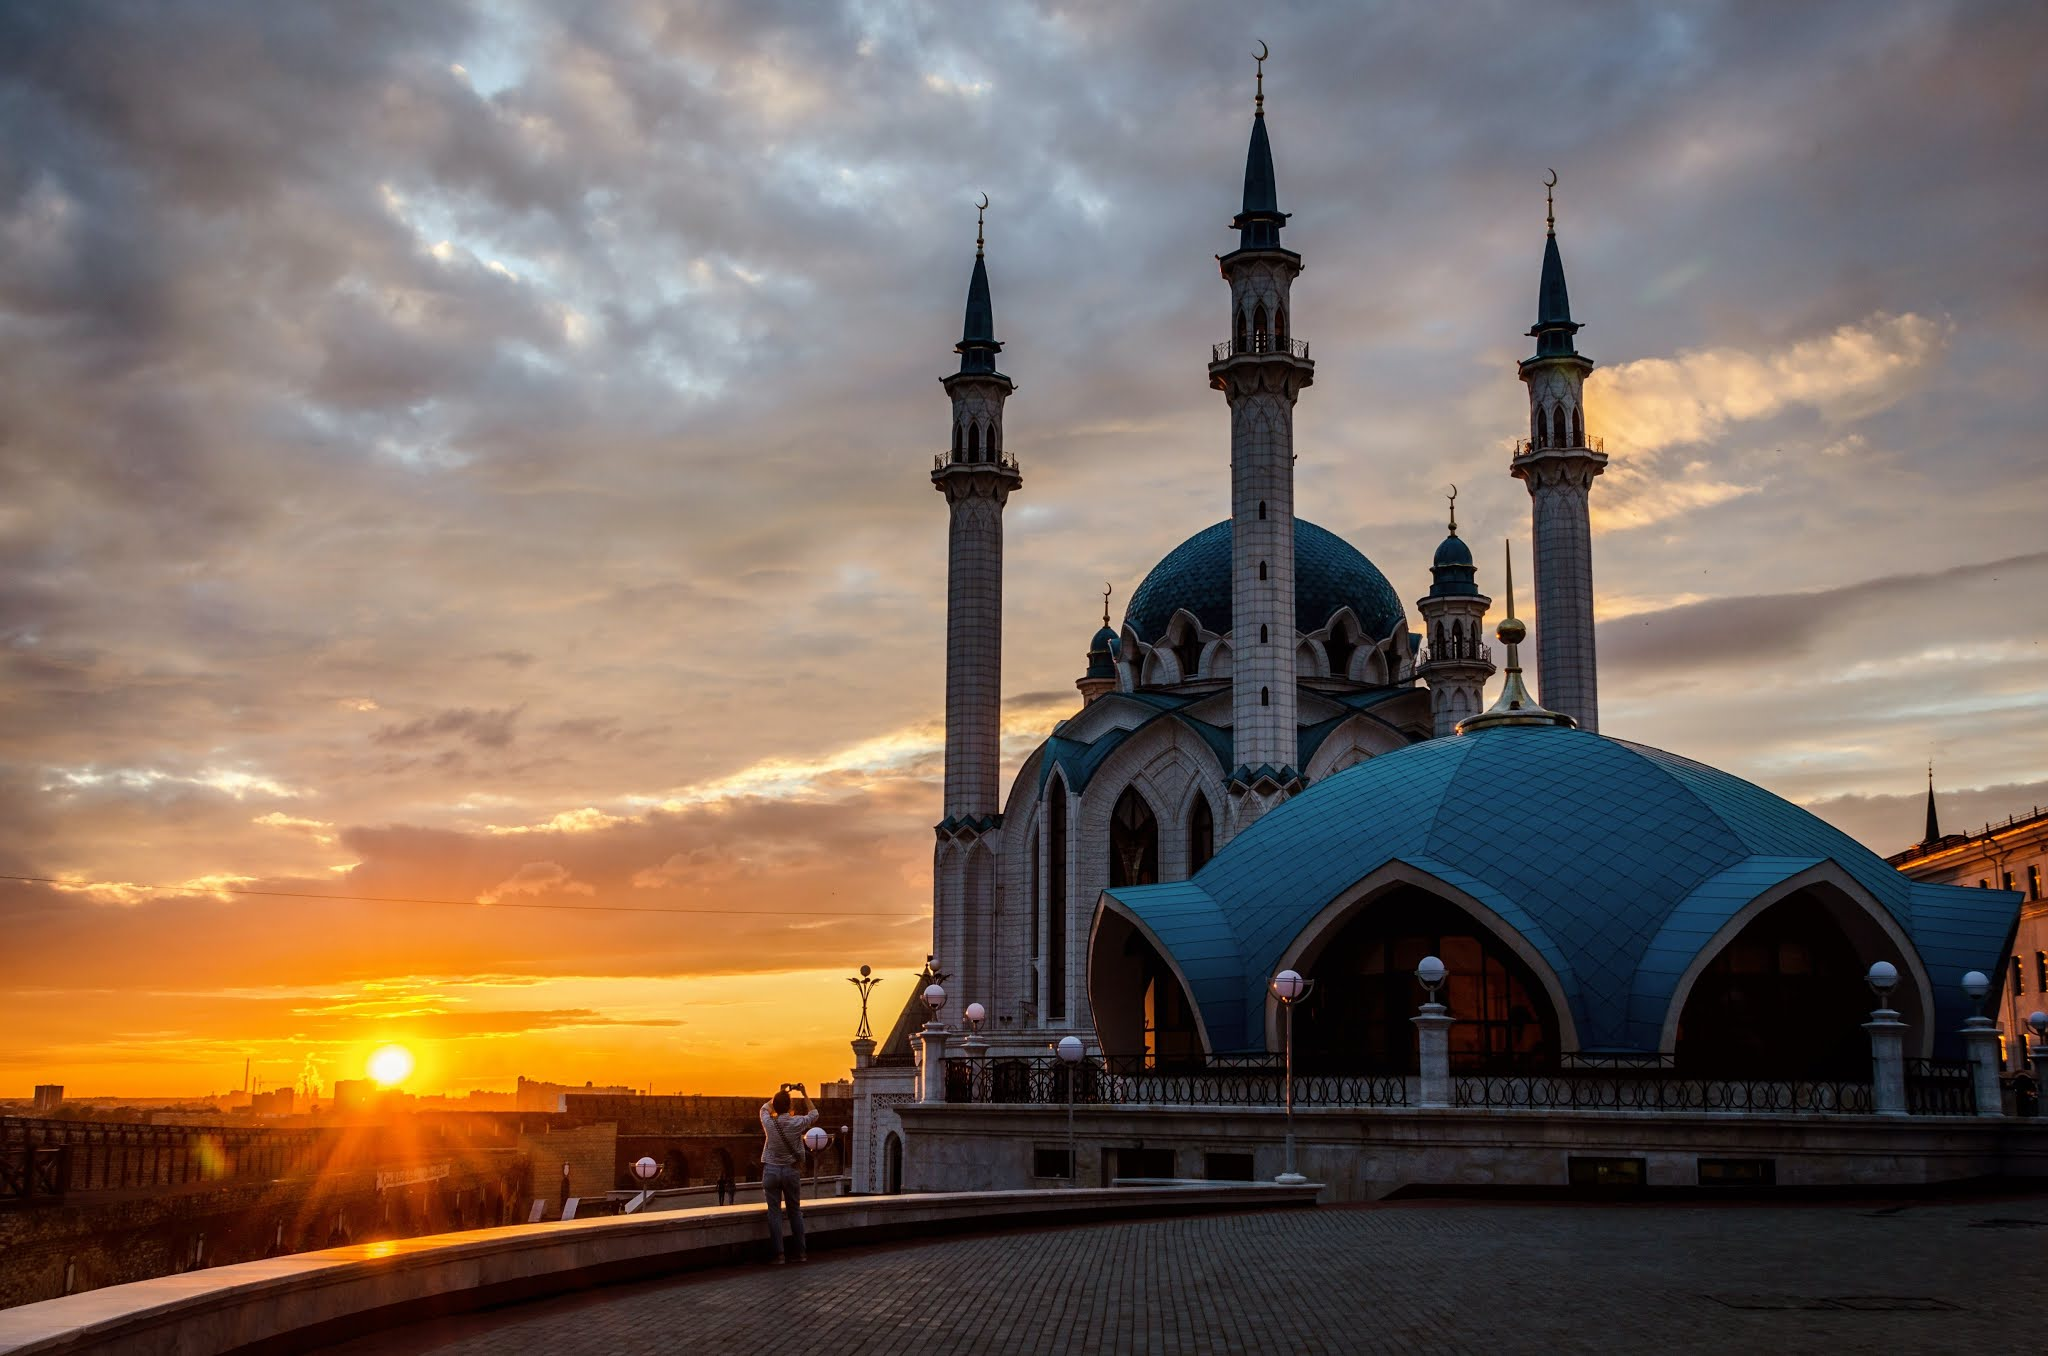 mosque hd wallpapers 1080p download